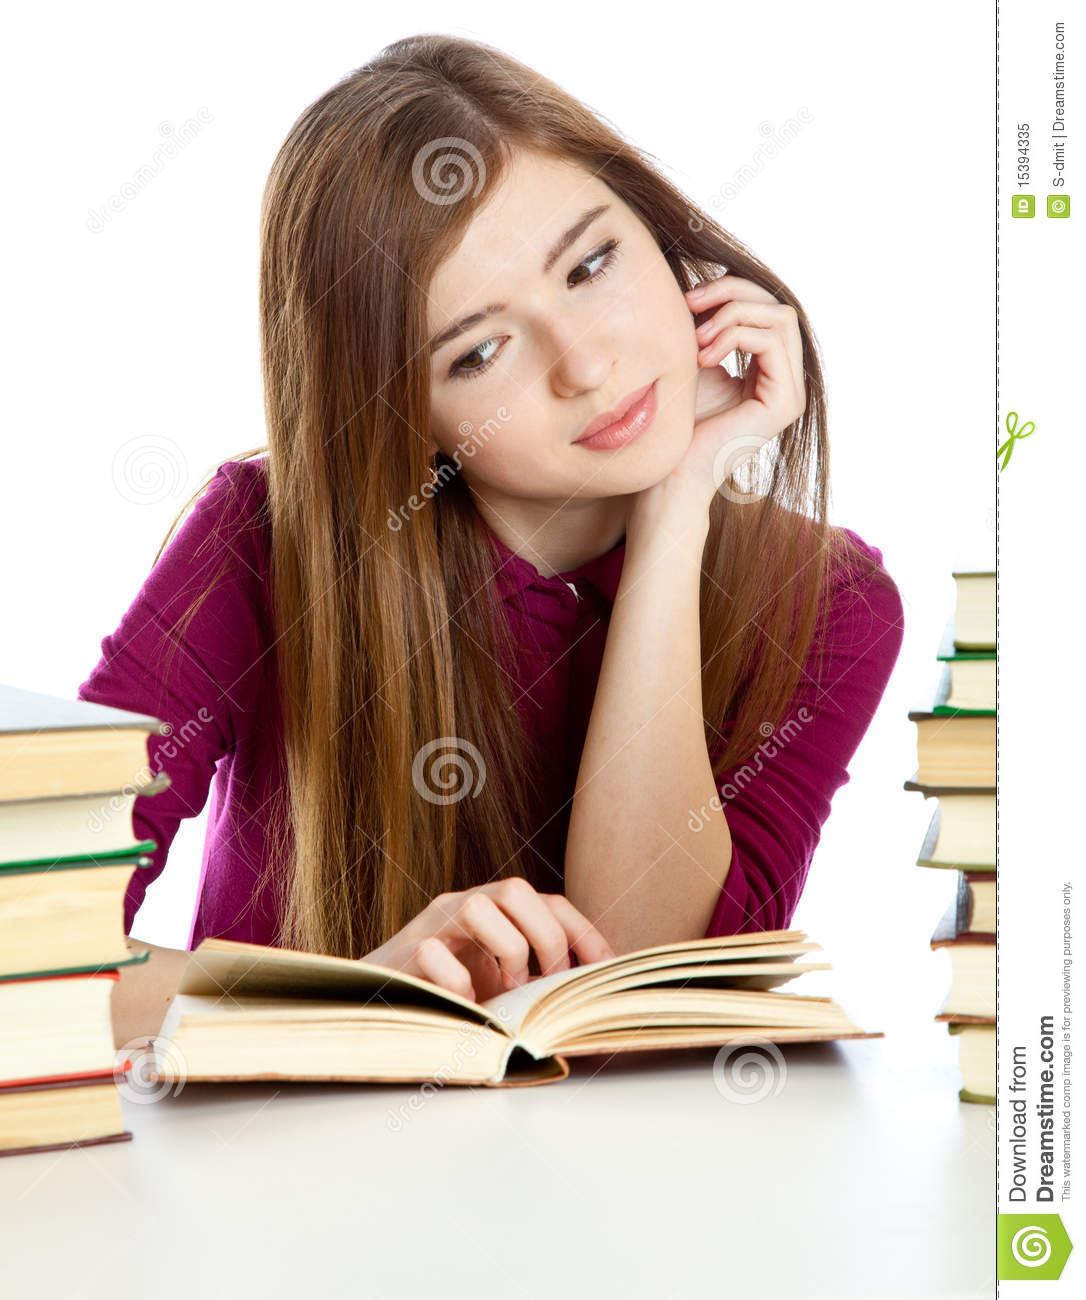 Young girl sitting at the desk and reading book royalty free stock photo image 15394335 - Desk girl image in ...